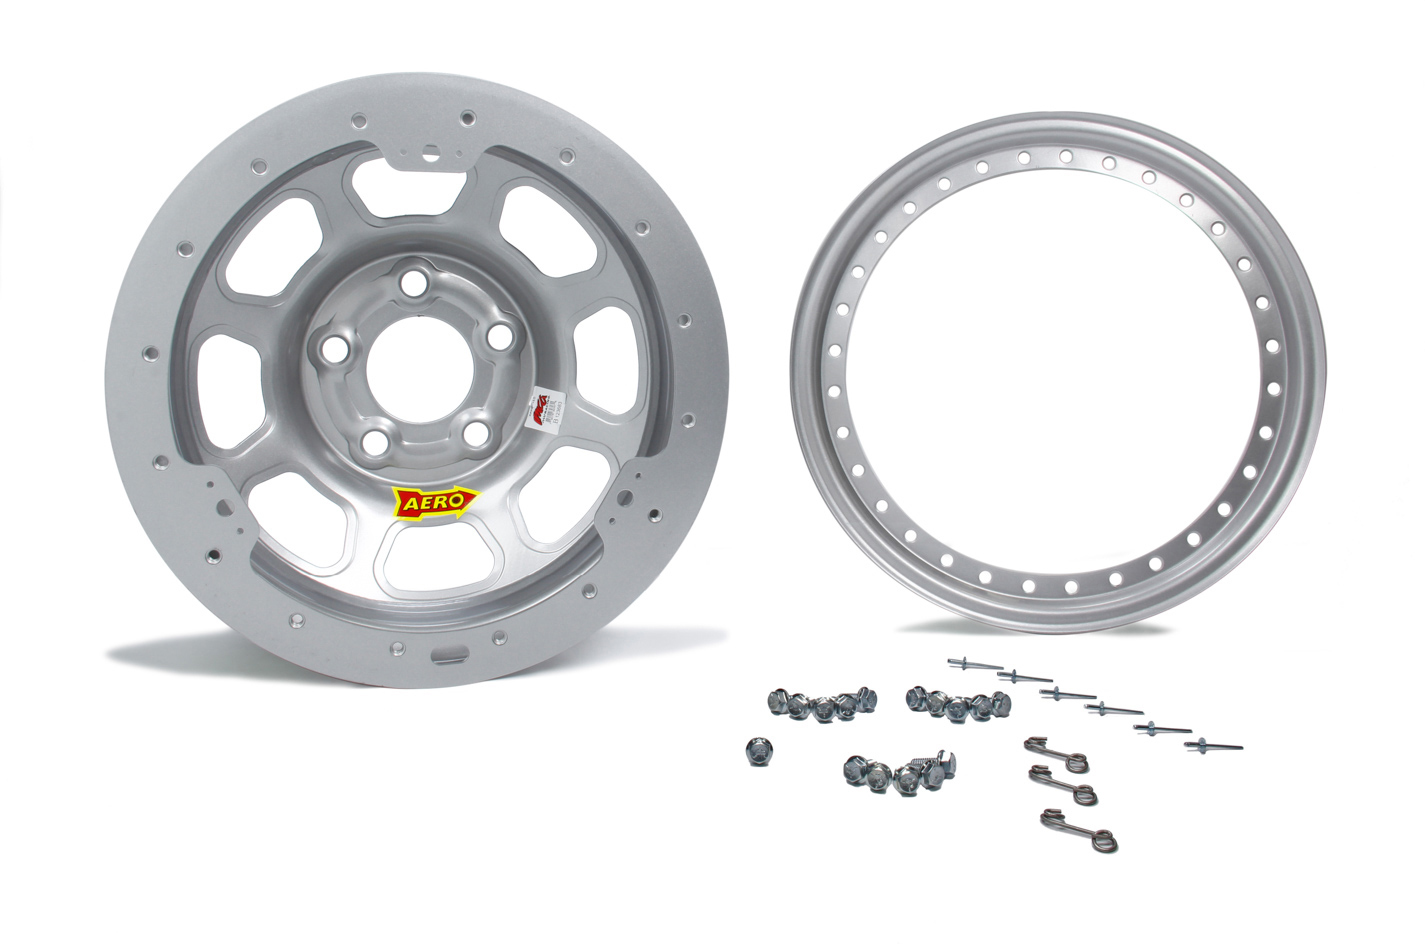 Aero Race 13x8 2in. 4.50 Silver Beadlock  Wheel